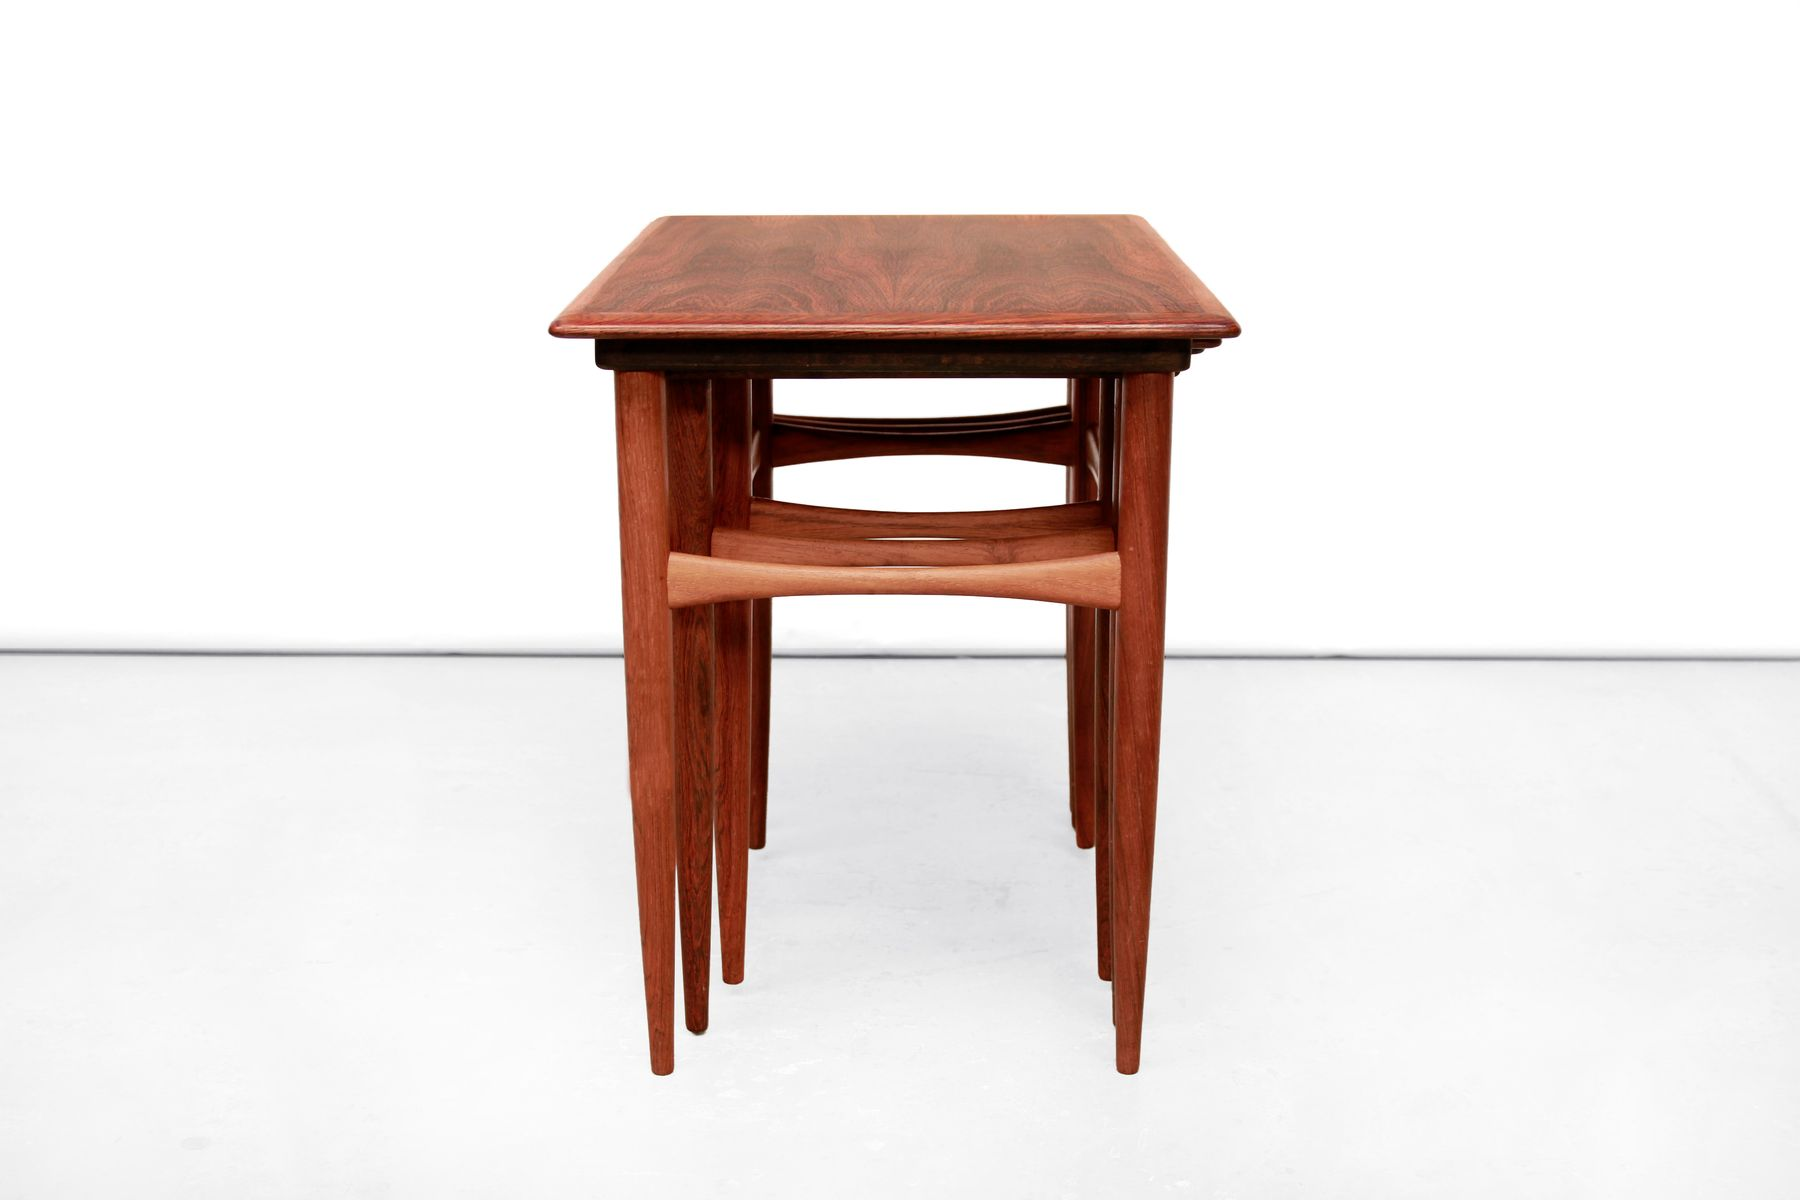 Amazing photo of Scandinavian Rosewood Nesting Tables by Poul Hundevad 1960s for sale  with #31140C color and 1800x1200 pixels